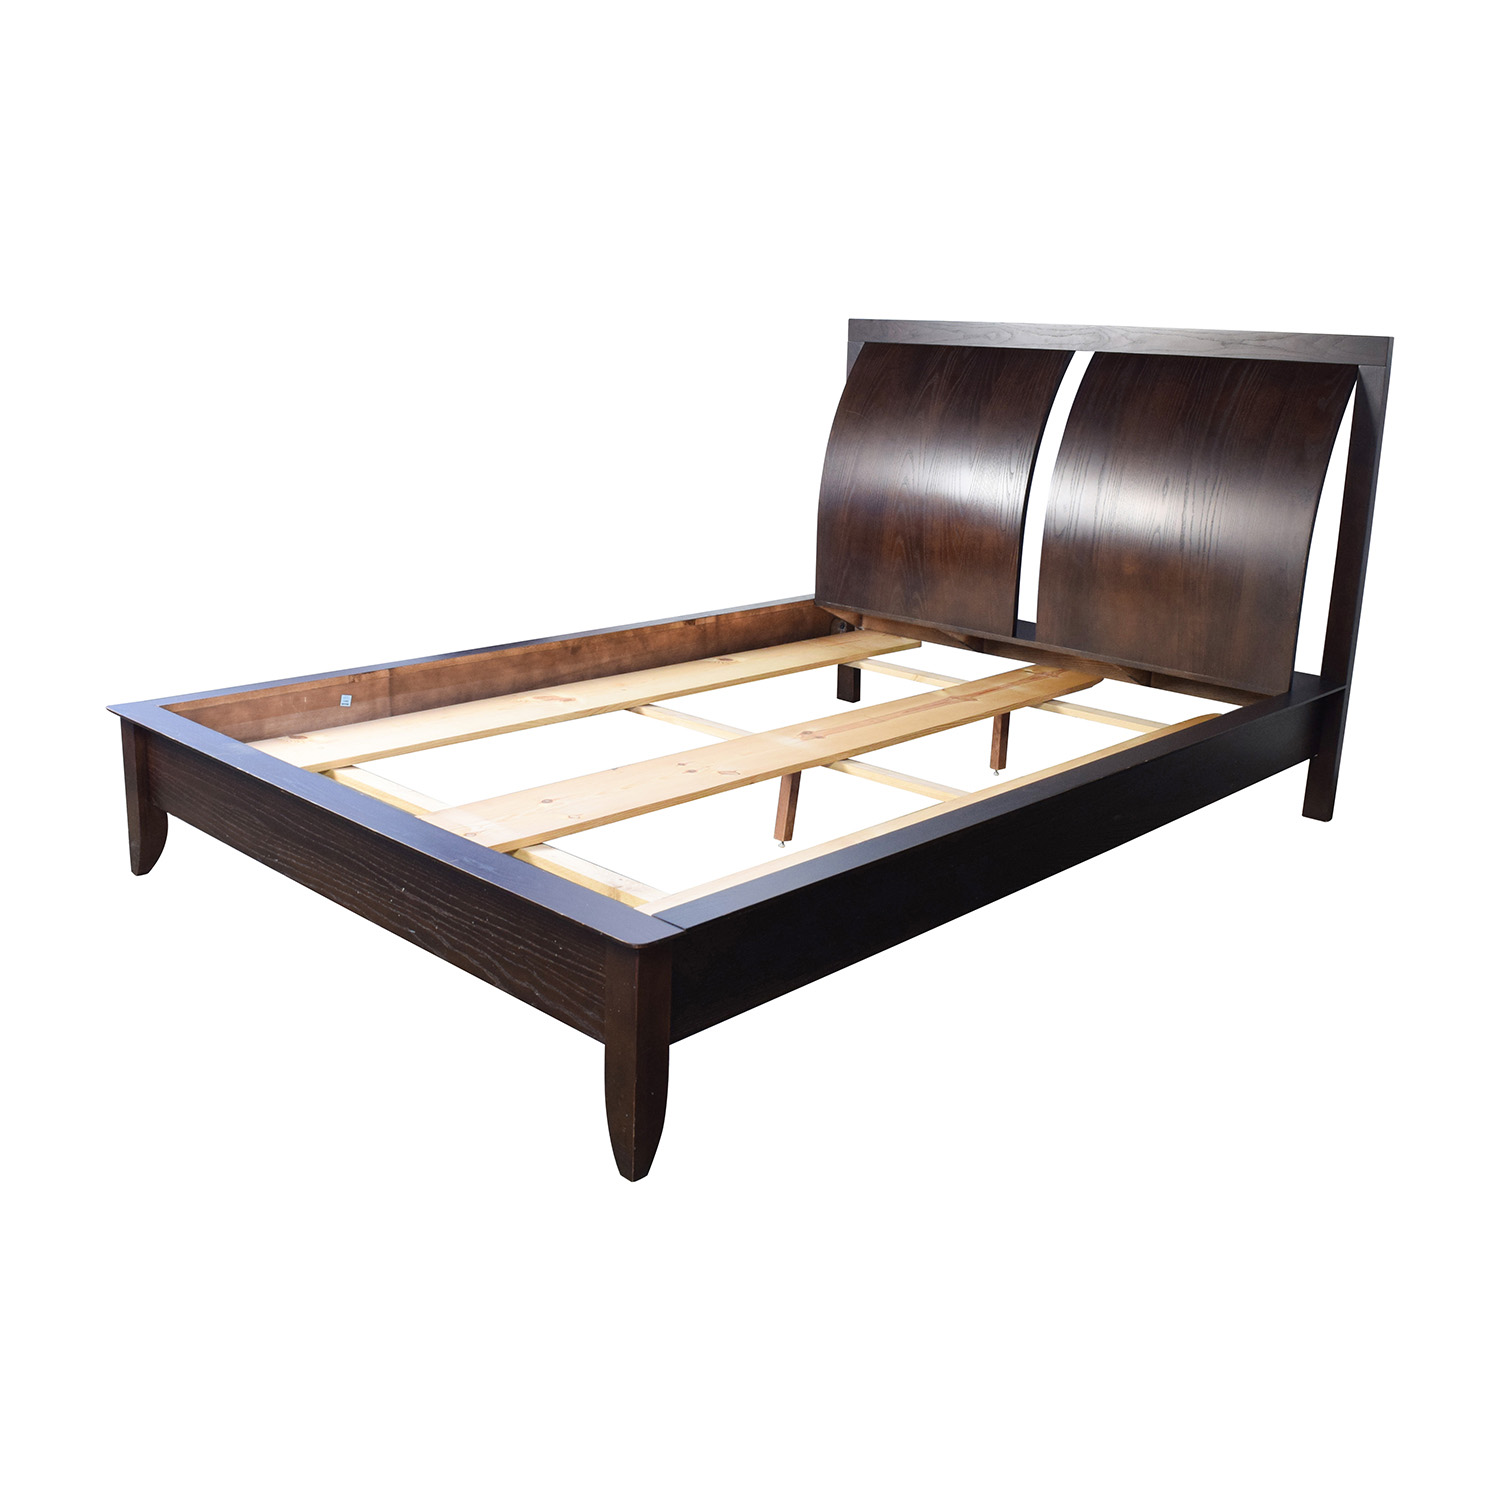 84 off wooden sleigh curved headboard bed frame beds for Wooden bed frame and mattress